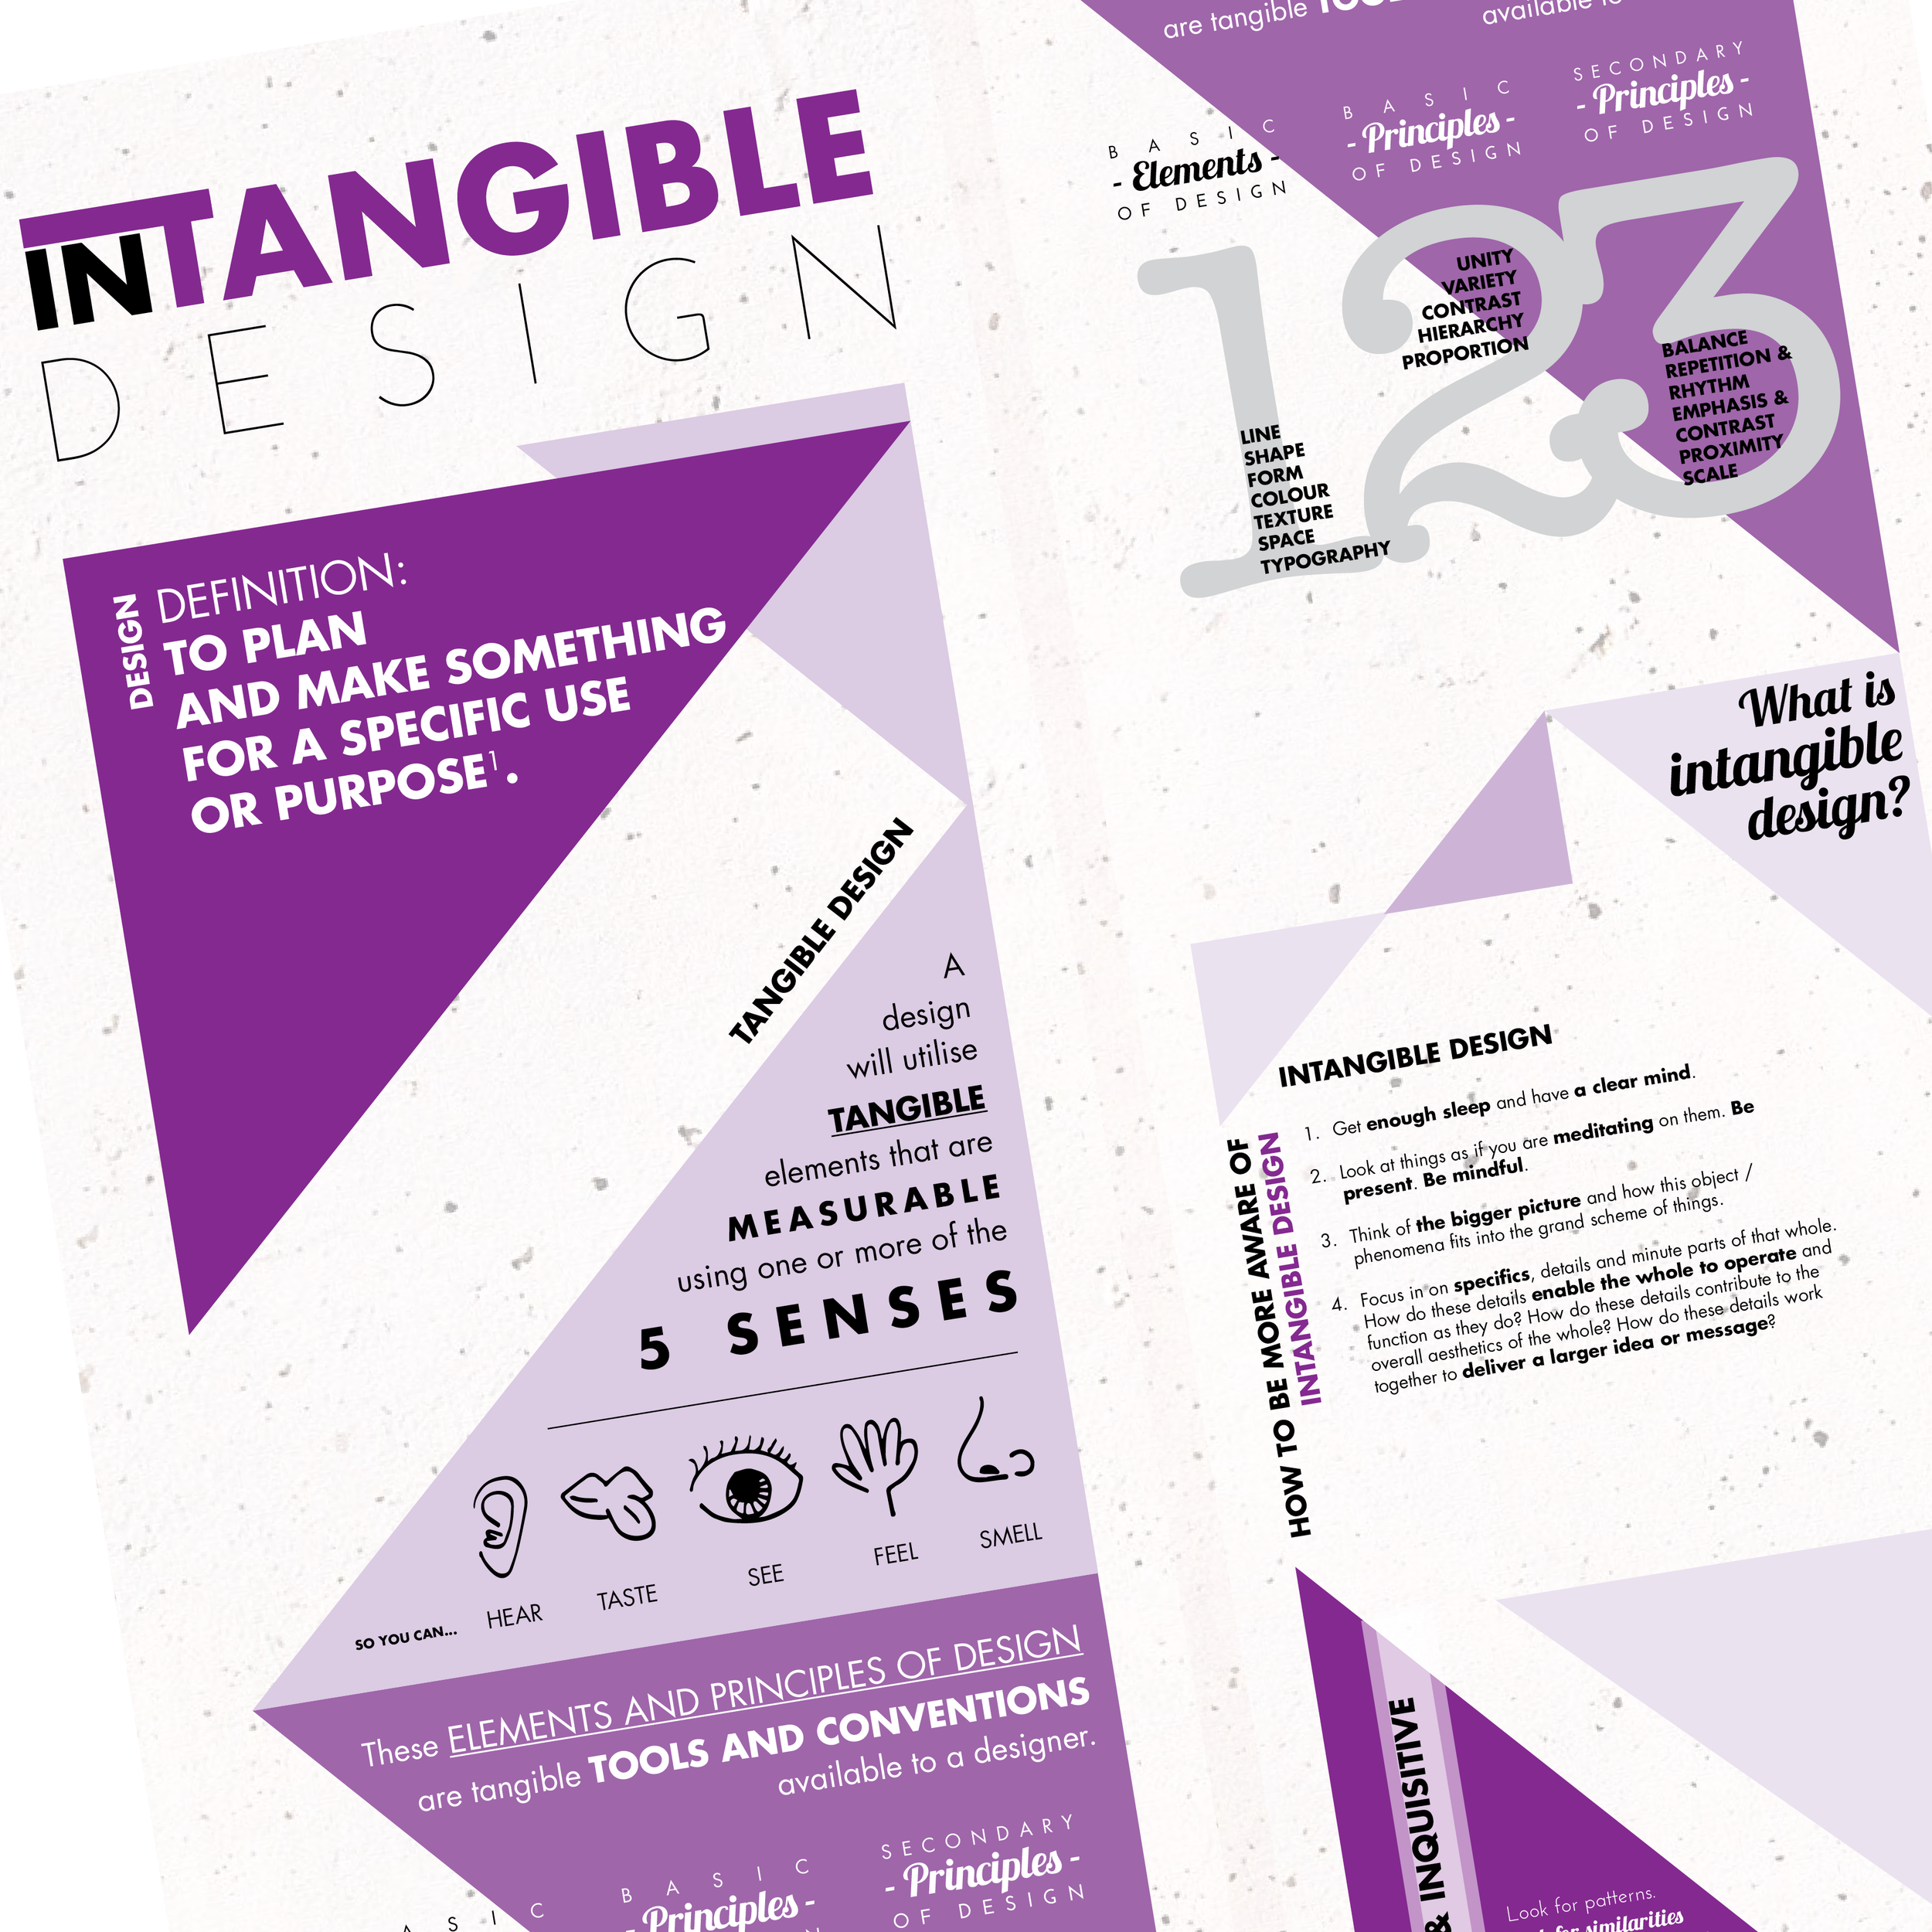 INTANGIBLE DESIGN  {INFORMATION DESIGN}